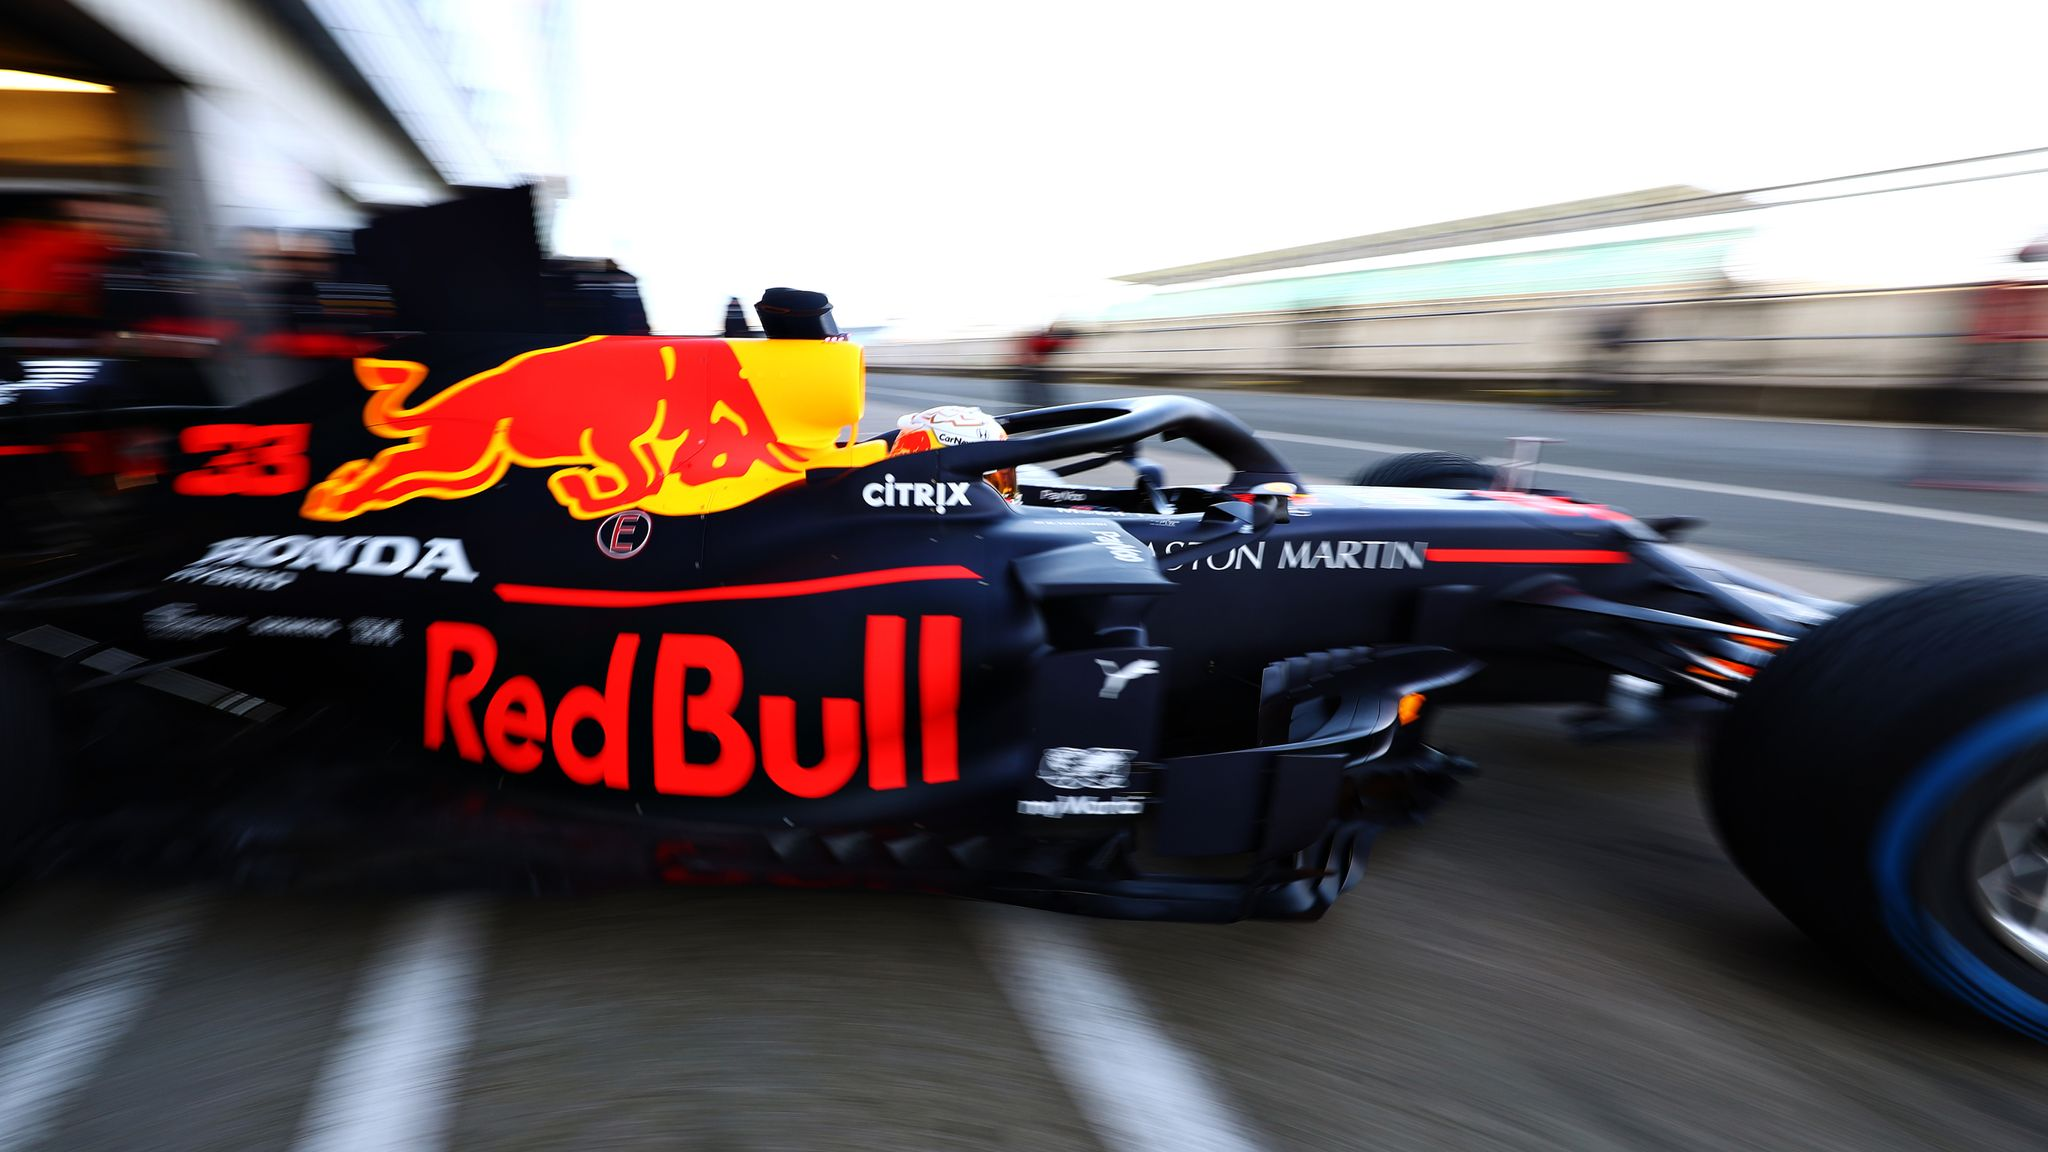 Red Bull Honda S 2020 F1 Car Hailed As Work Of Art After Track Debut F1 News